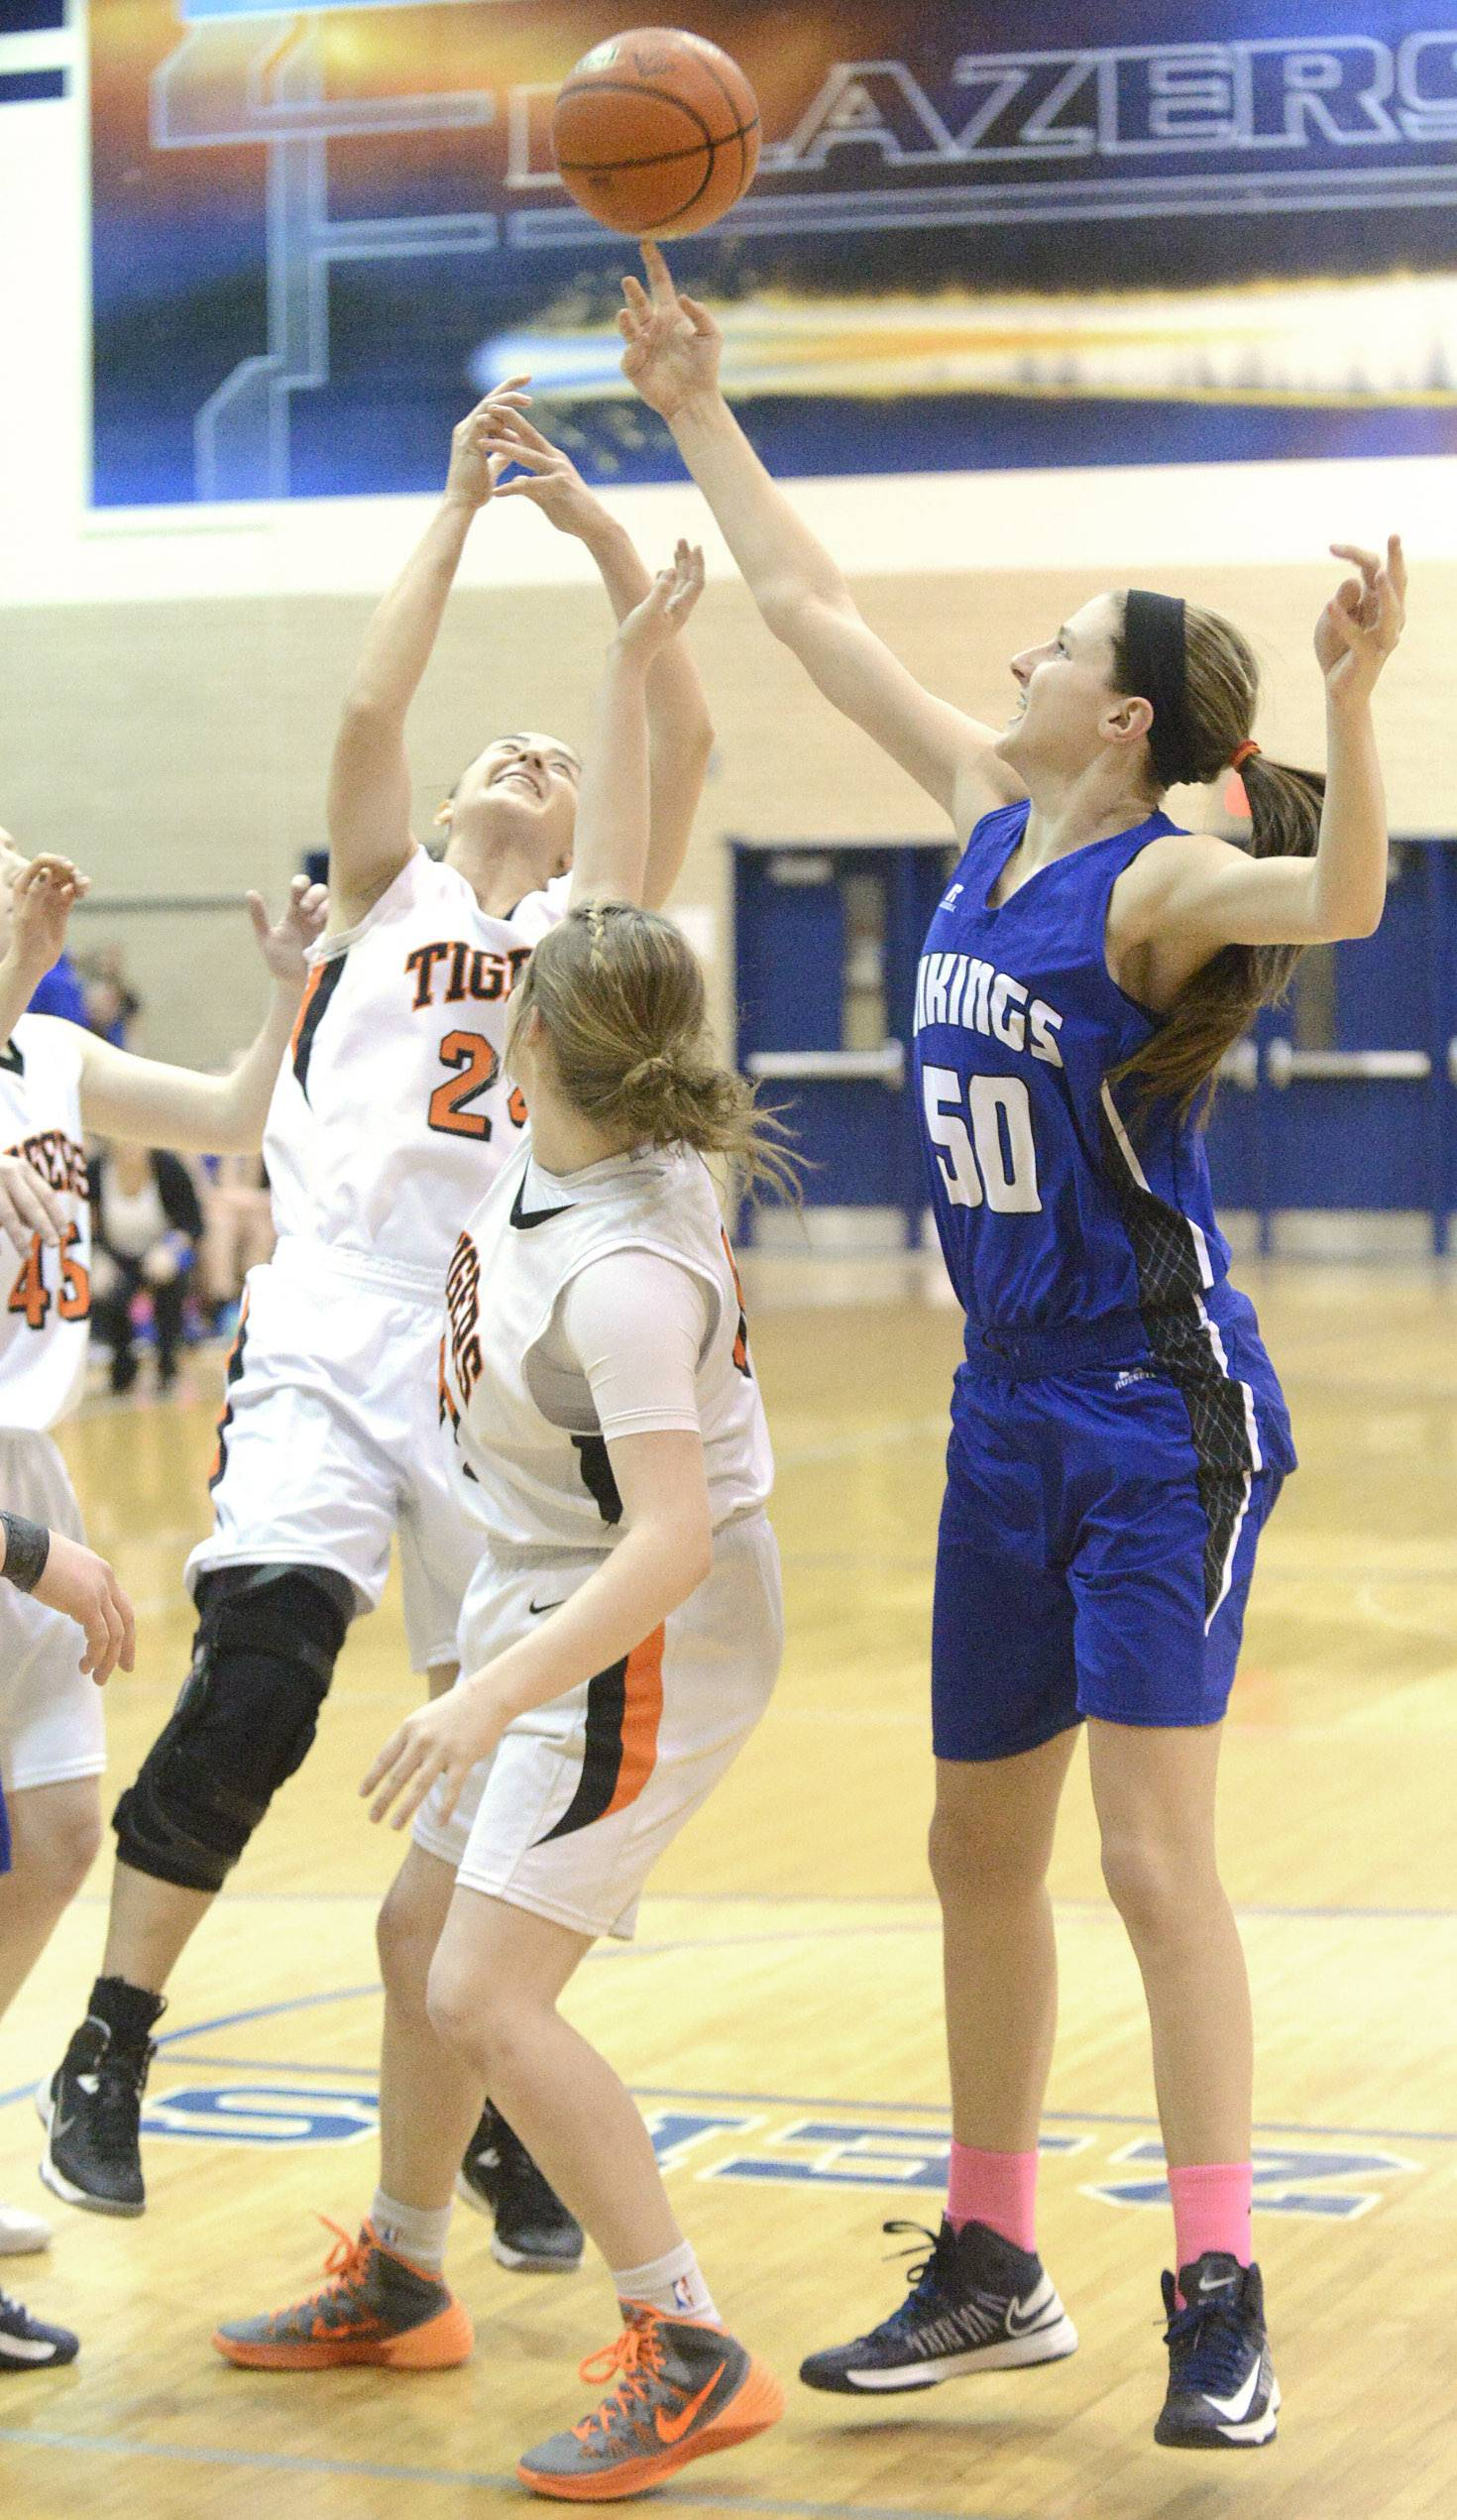 Wheaton Warrenville South's Maggie Dansdill ,left, and Olivia Linebarger attempt to block a shot by Geneva's Grace Loberg in the first quarter.